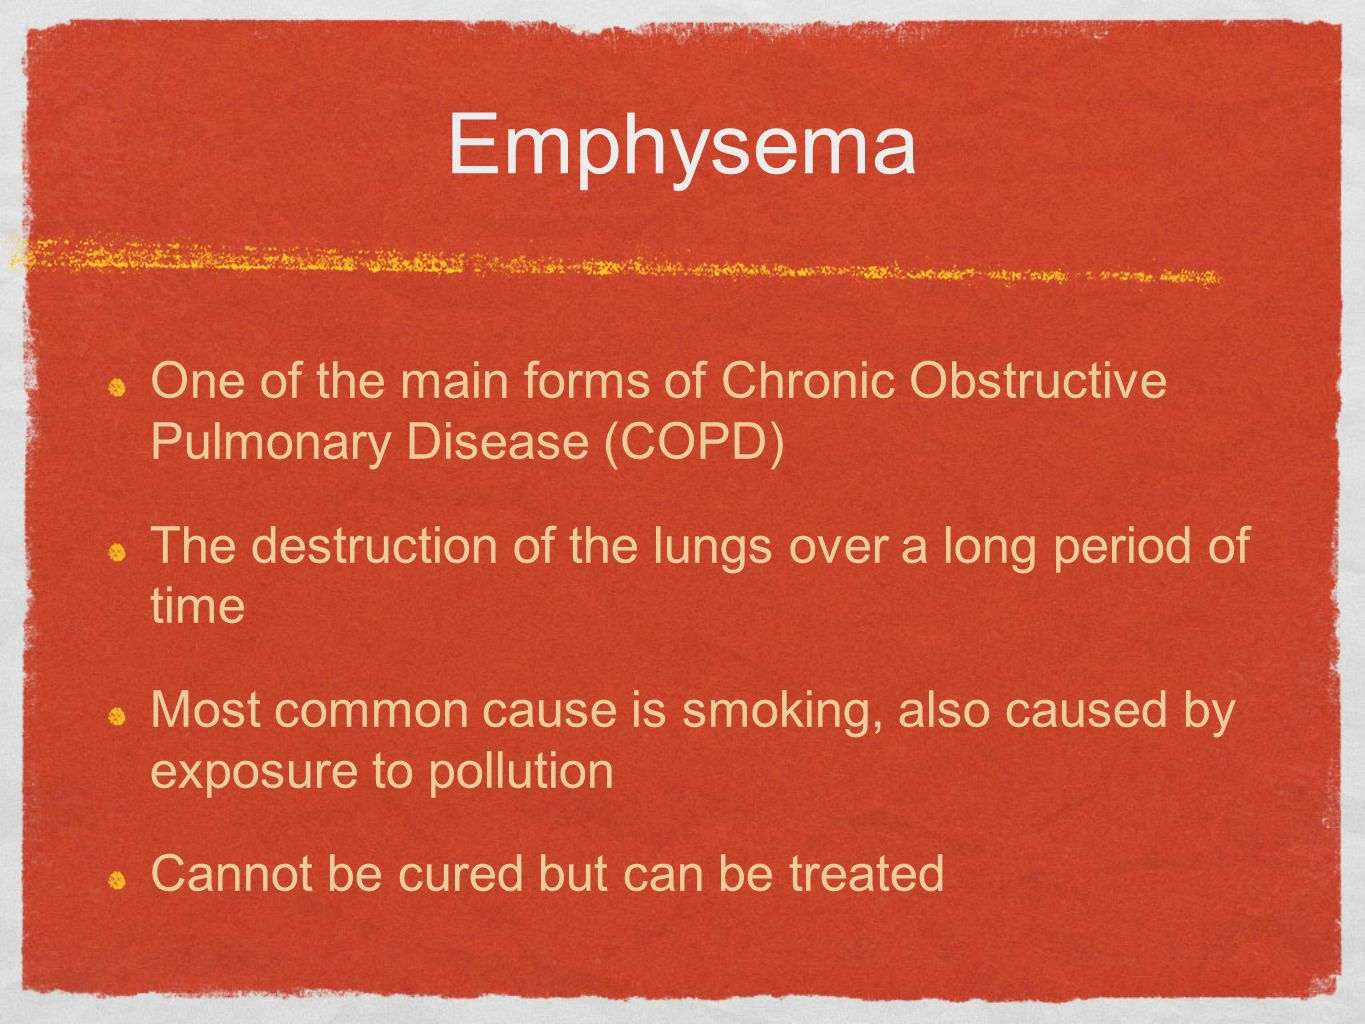 Emphysema One of the main forms of Chronic Obstructive Pulmonary Disease (COPD) The destruction of the lungs over a long period of time.